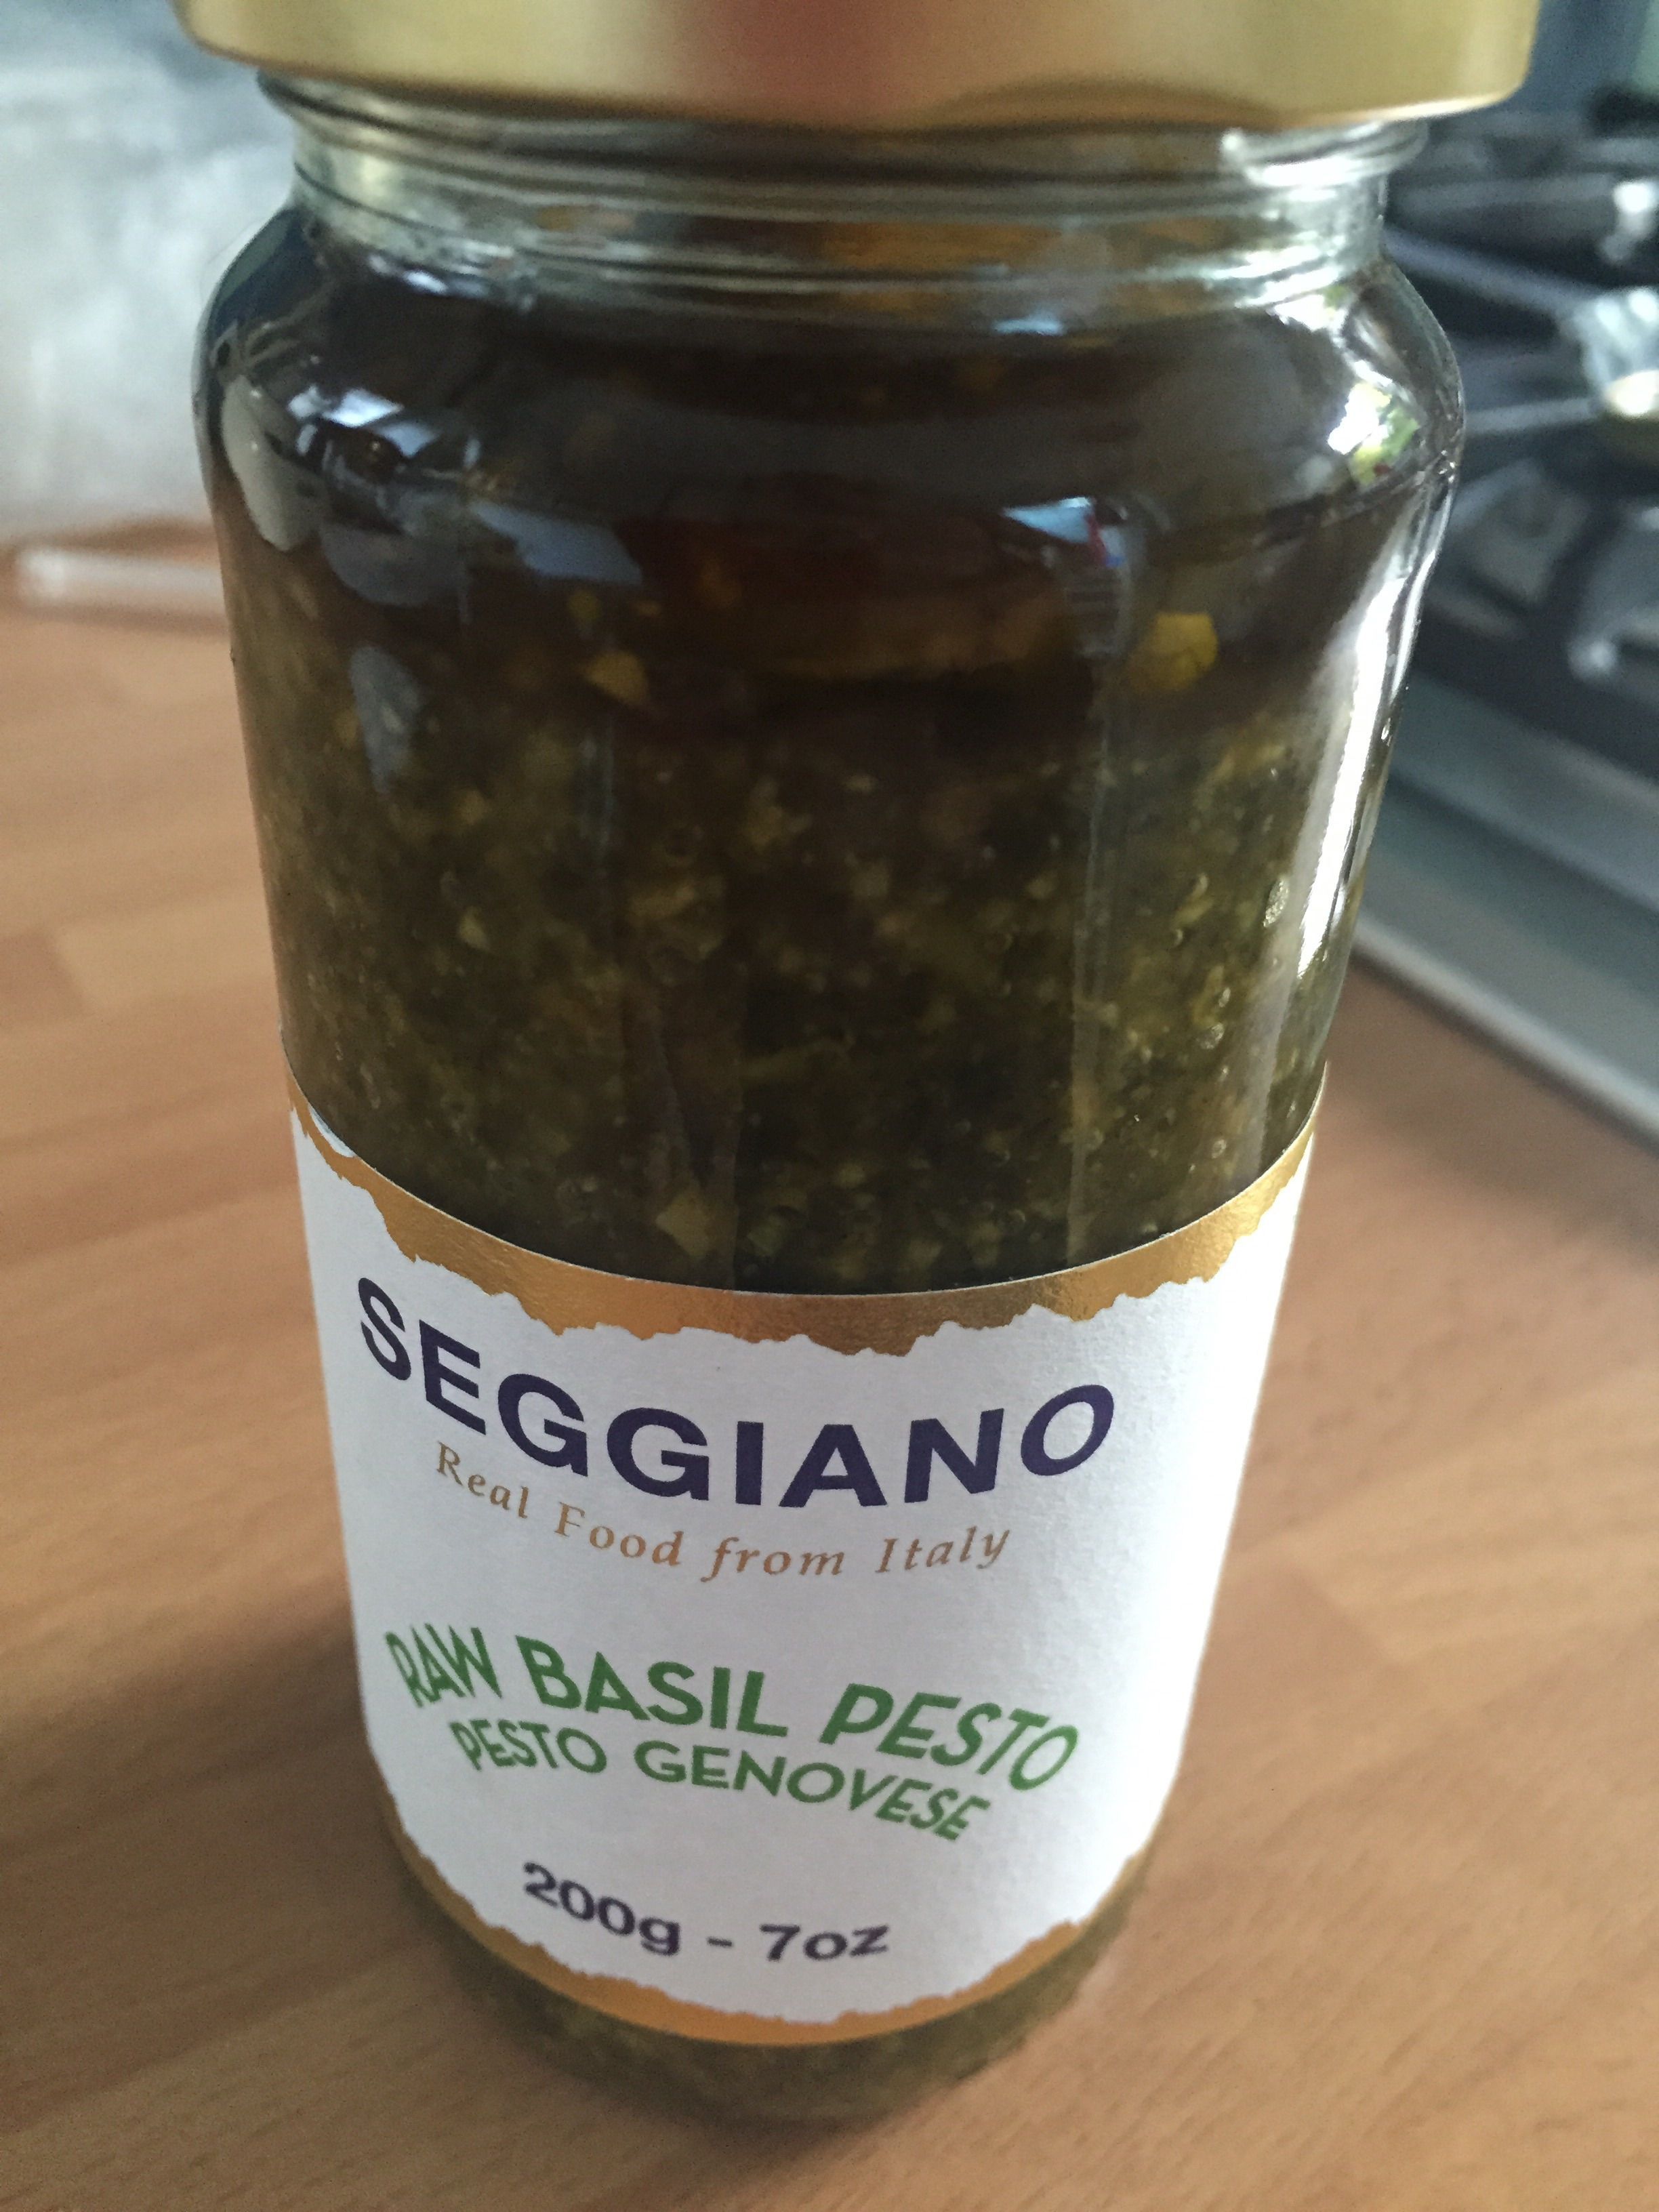 Raw basil pesto unopened